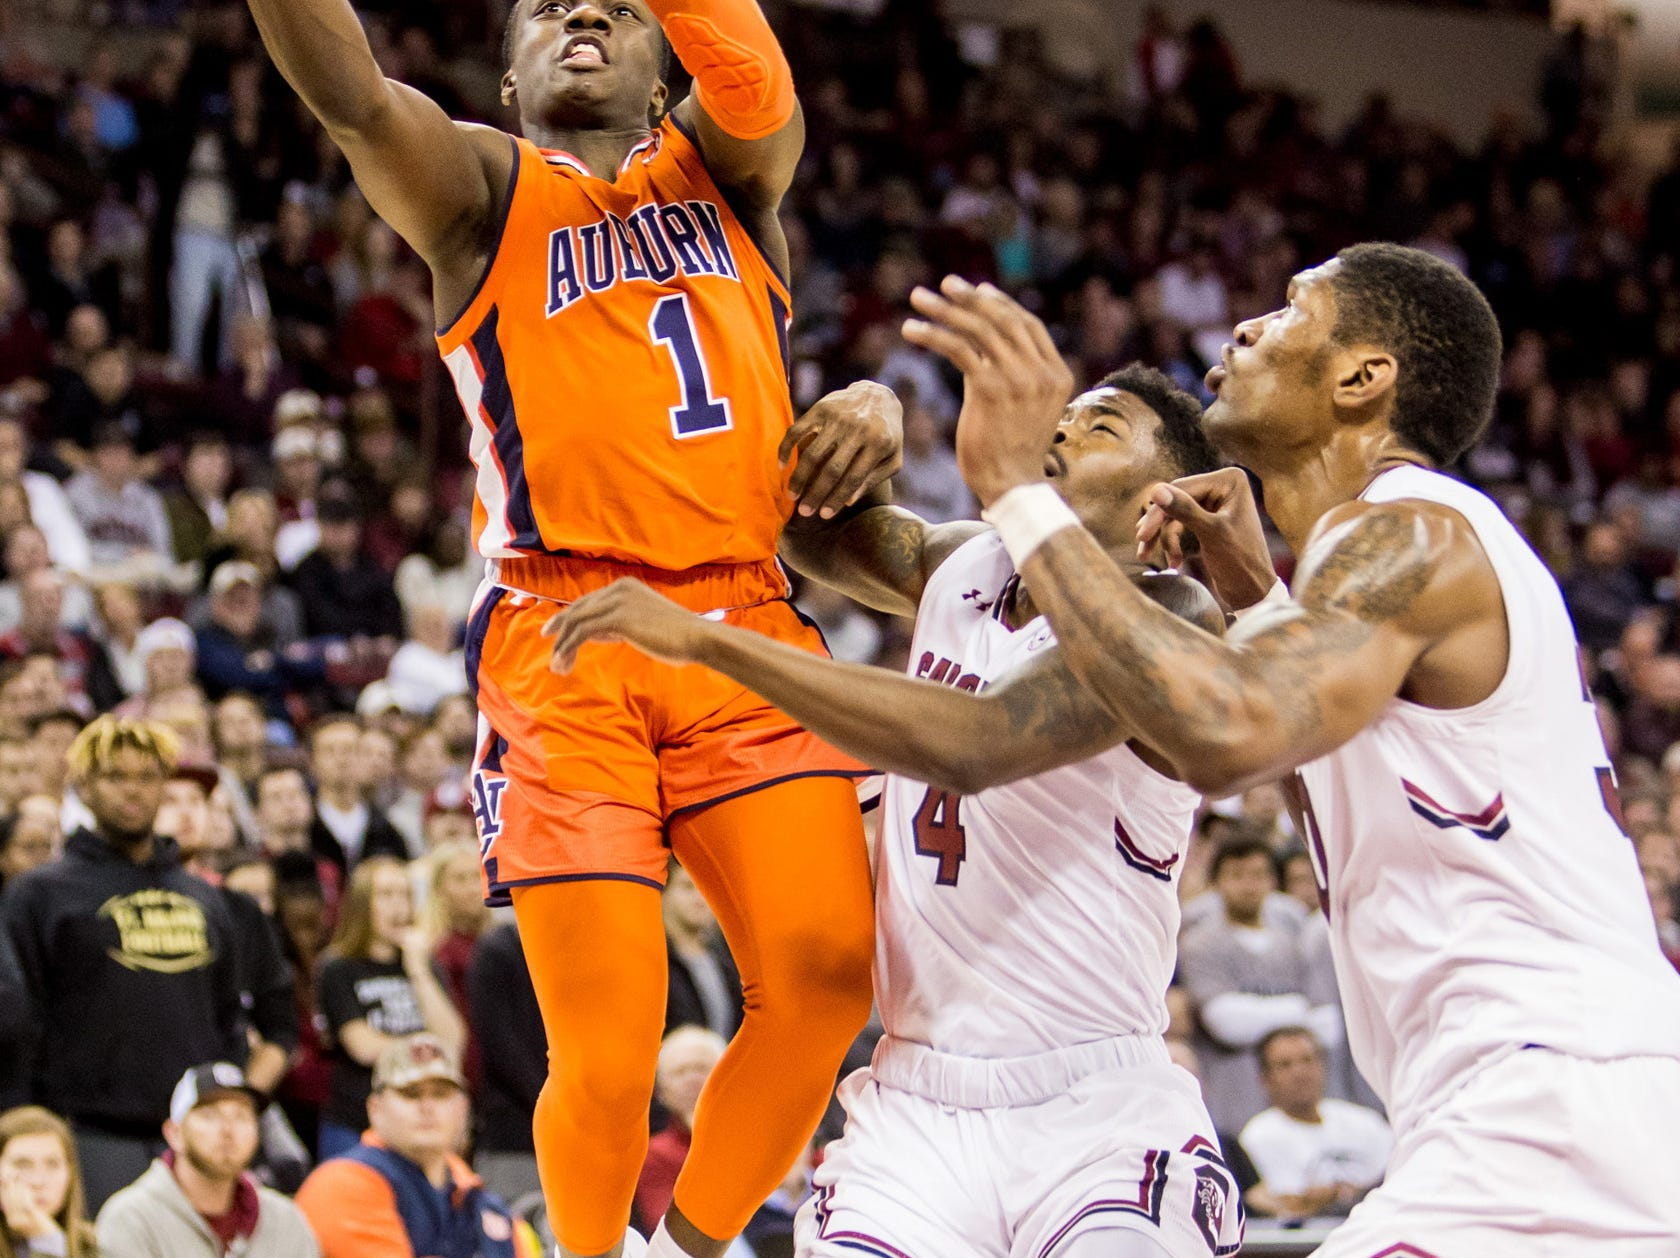 Jan 22, 2019; Columbia, SC, USA; Auburn Tigers guard Jared Harper (1) shoots over South Carolina Gamecocks guard Tre Campbell (4) and forward Chris Silva (30) in the second half at Colonial Life Arena. South Carolina won 80-77. Mandatory Credit: Jeff Blake-USA TODAY Sports